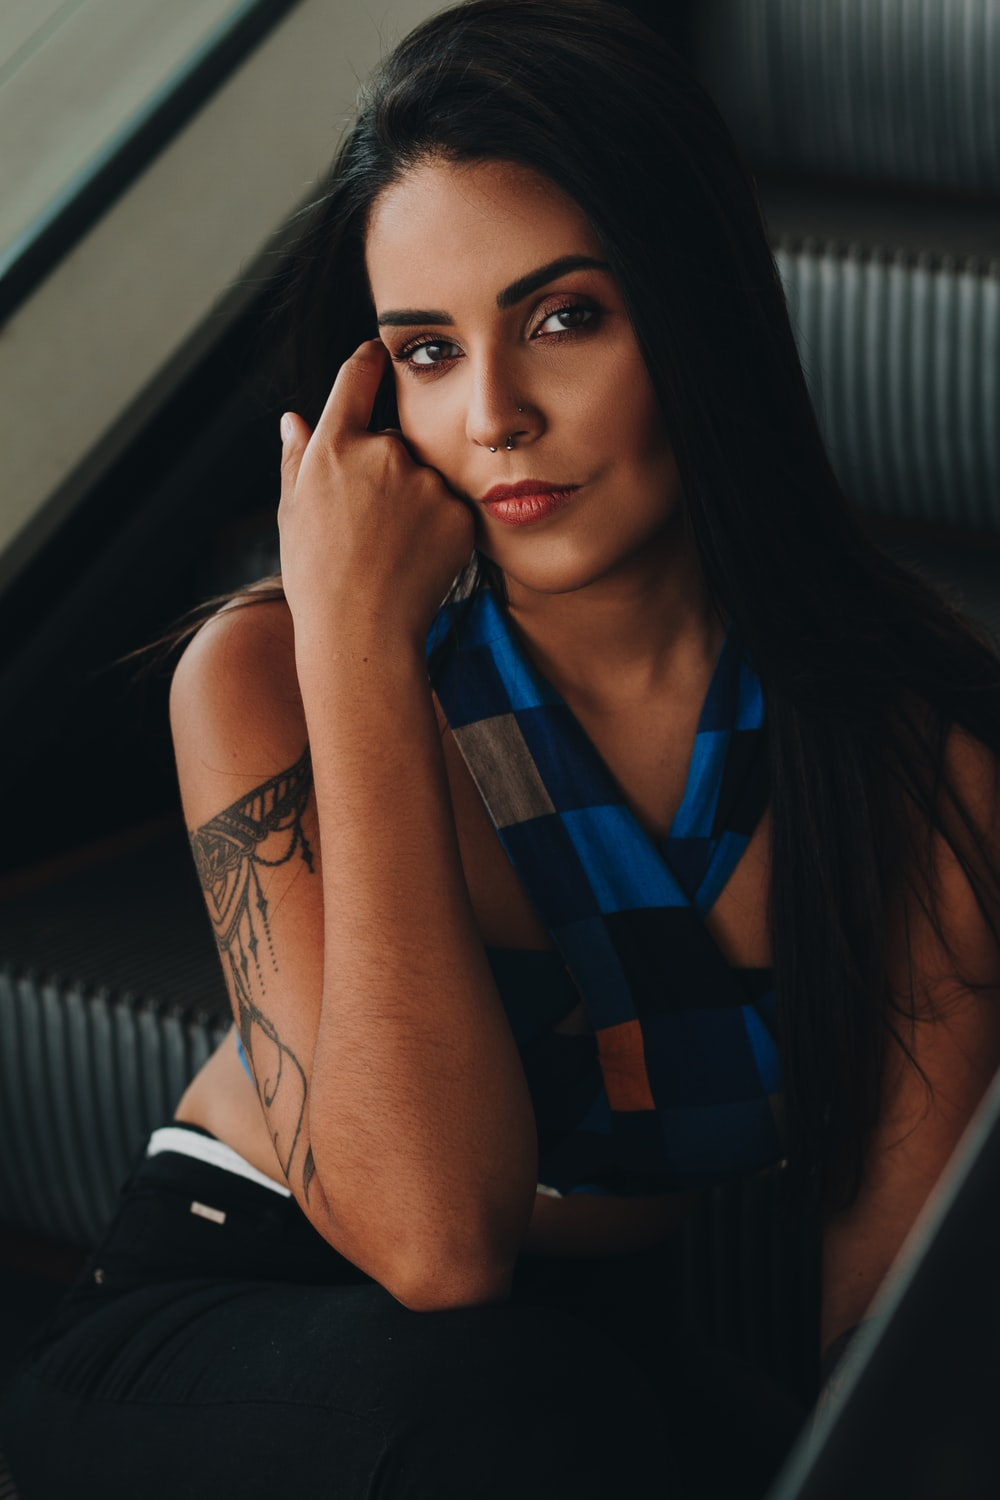 woman wearing blue and black halterneck top sitting and touching her face